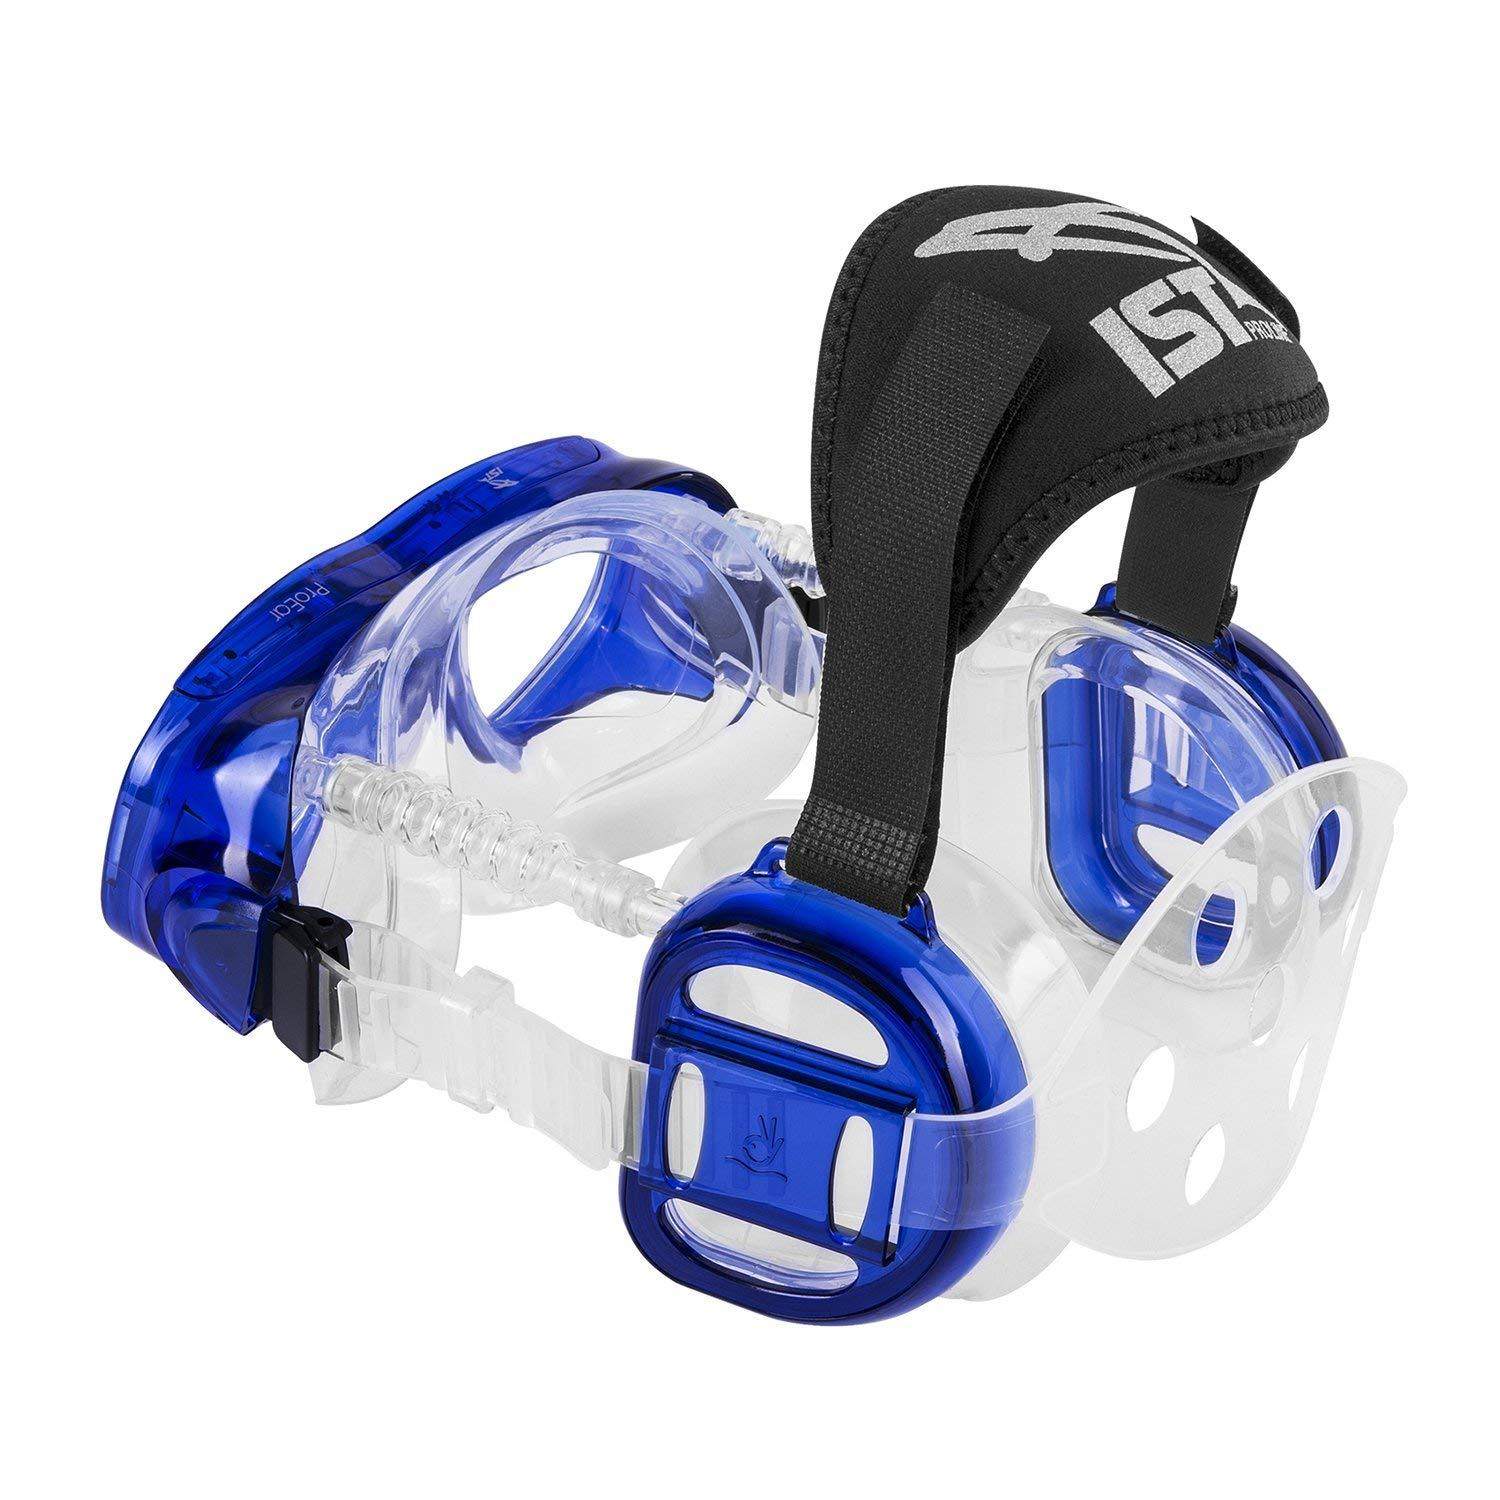 Pro Ear Scuba Diving Mask for All Around Ear Protection RX Prescription available